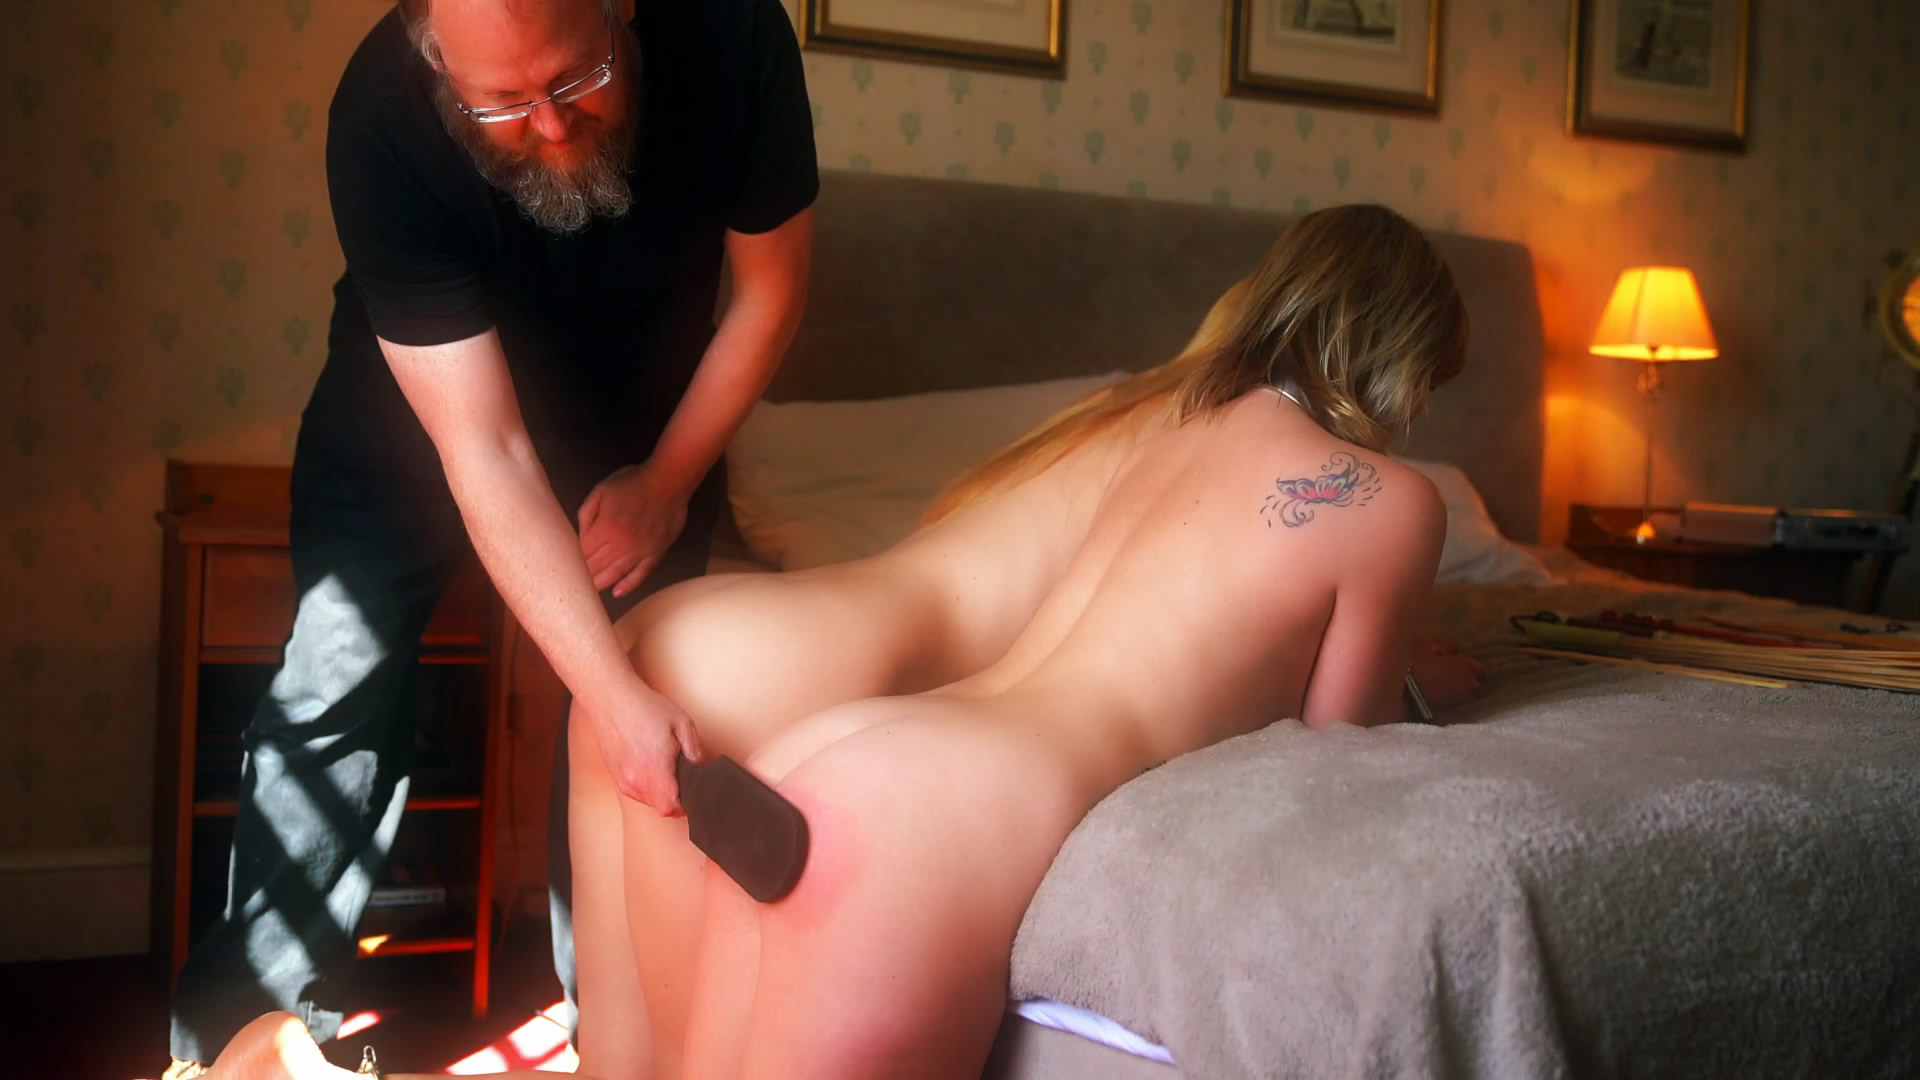 Restrained Elegance – MP4/Full HD – Ariel, Lucy and the Travelling Disciplinarian (Part Two)